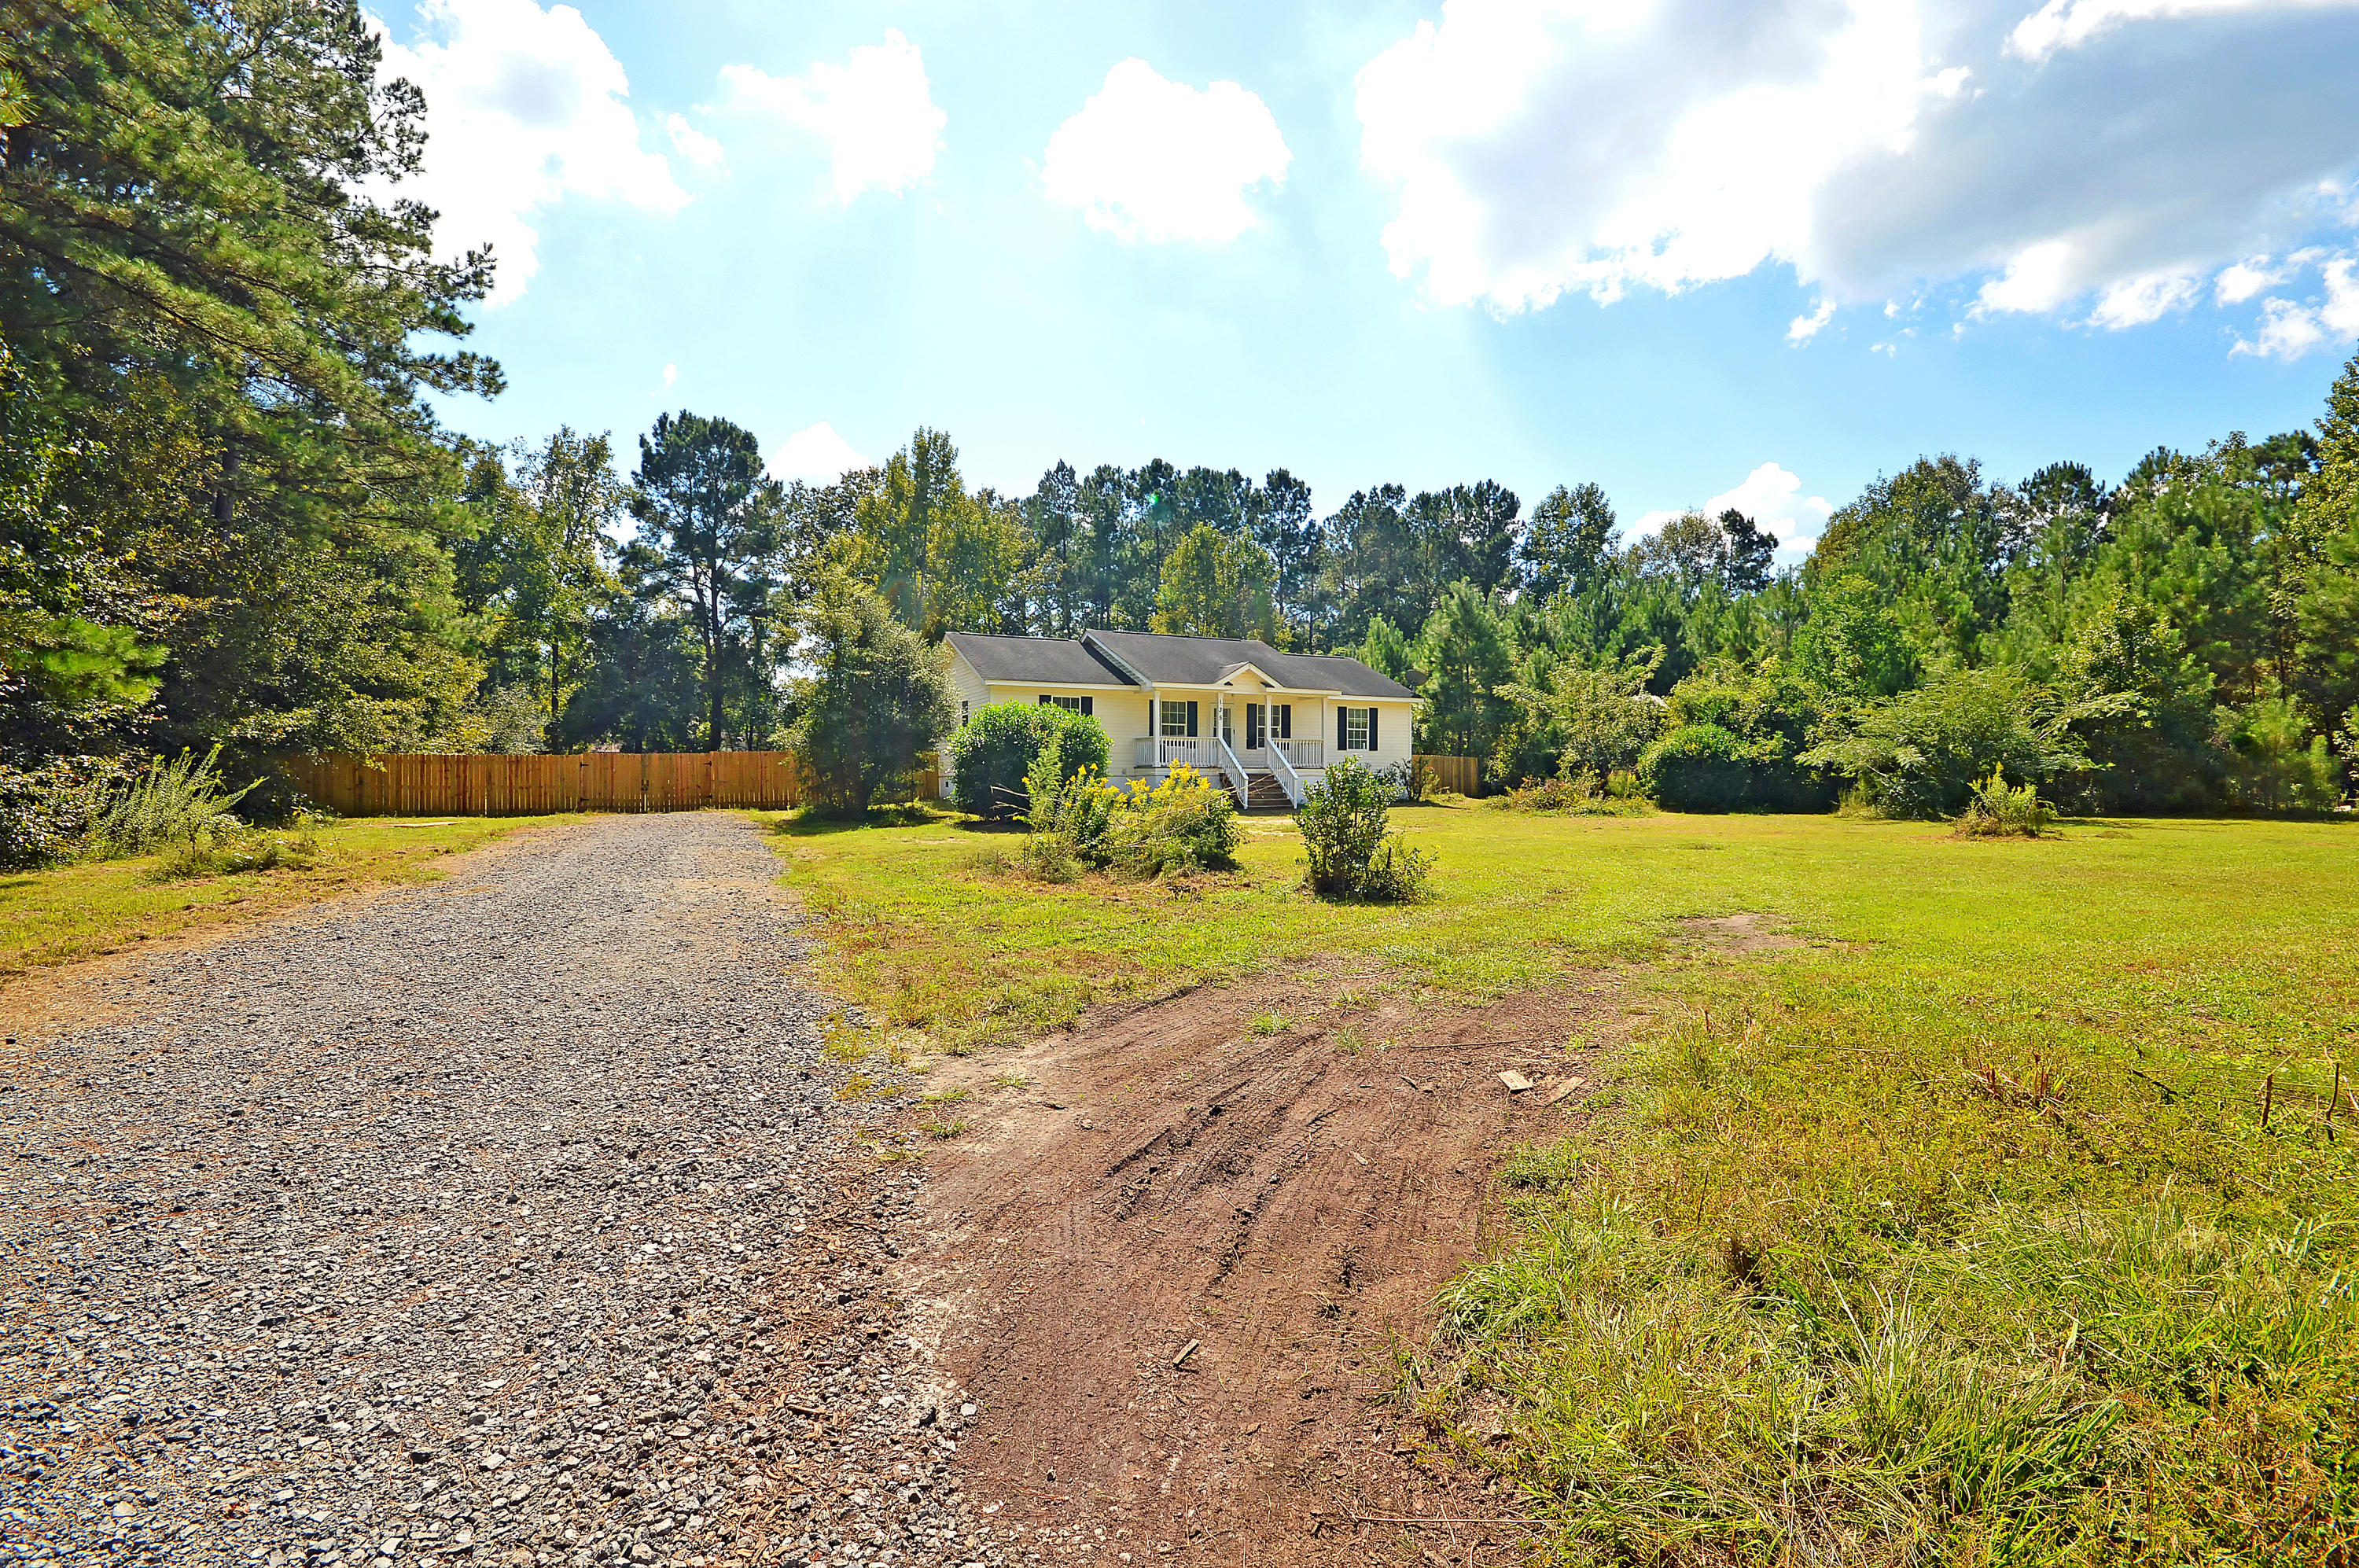 Lazy Acres Homes For Sale - 135 Lazy Acres, Summerville, SC - 1